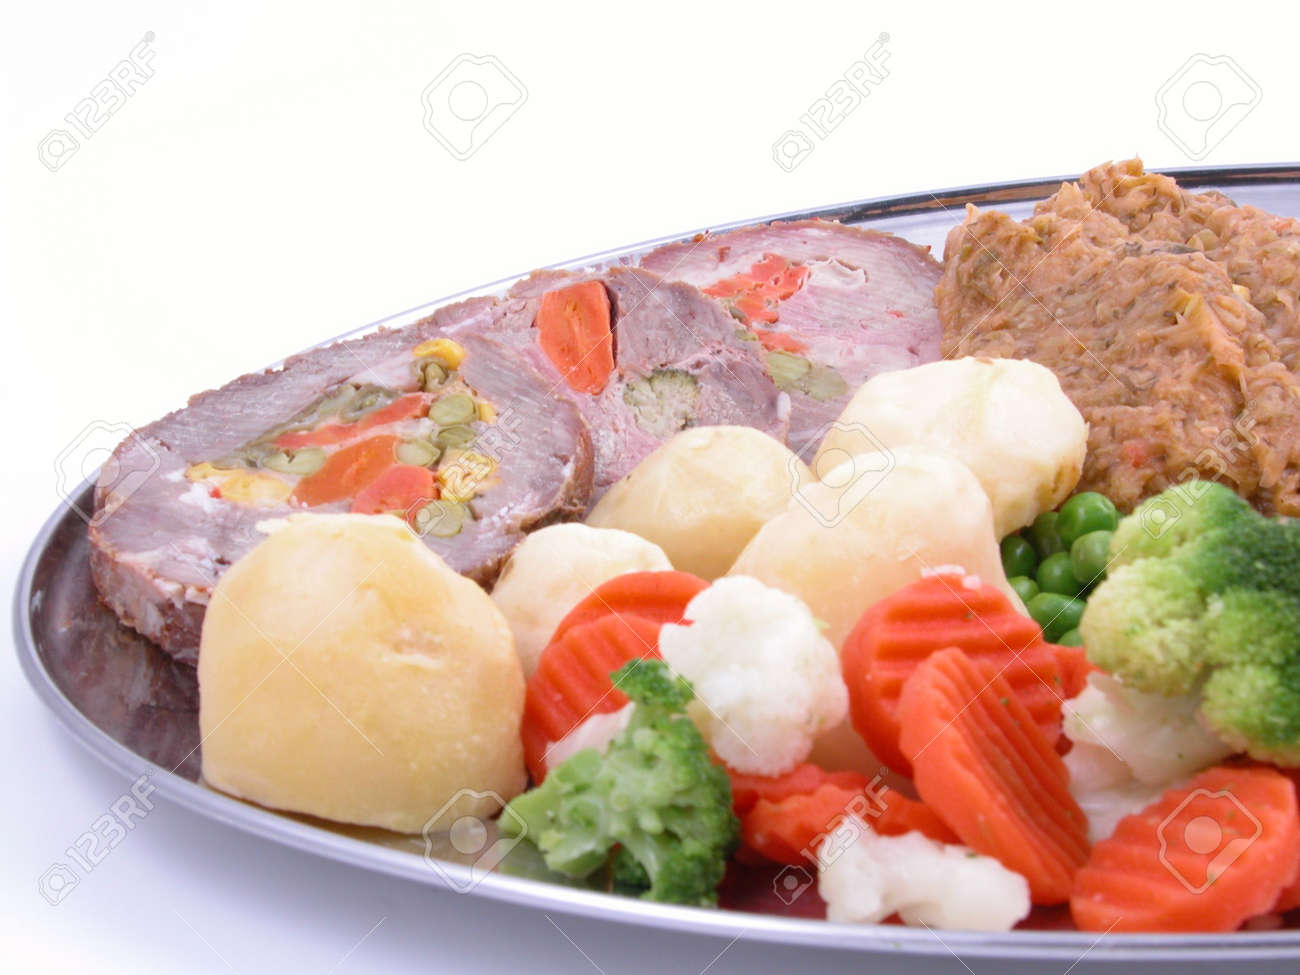 plate full of cooked vegetables and meat Stock Photo - 518873